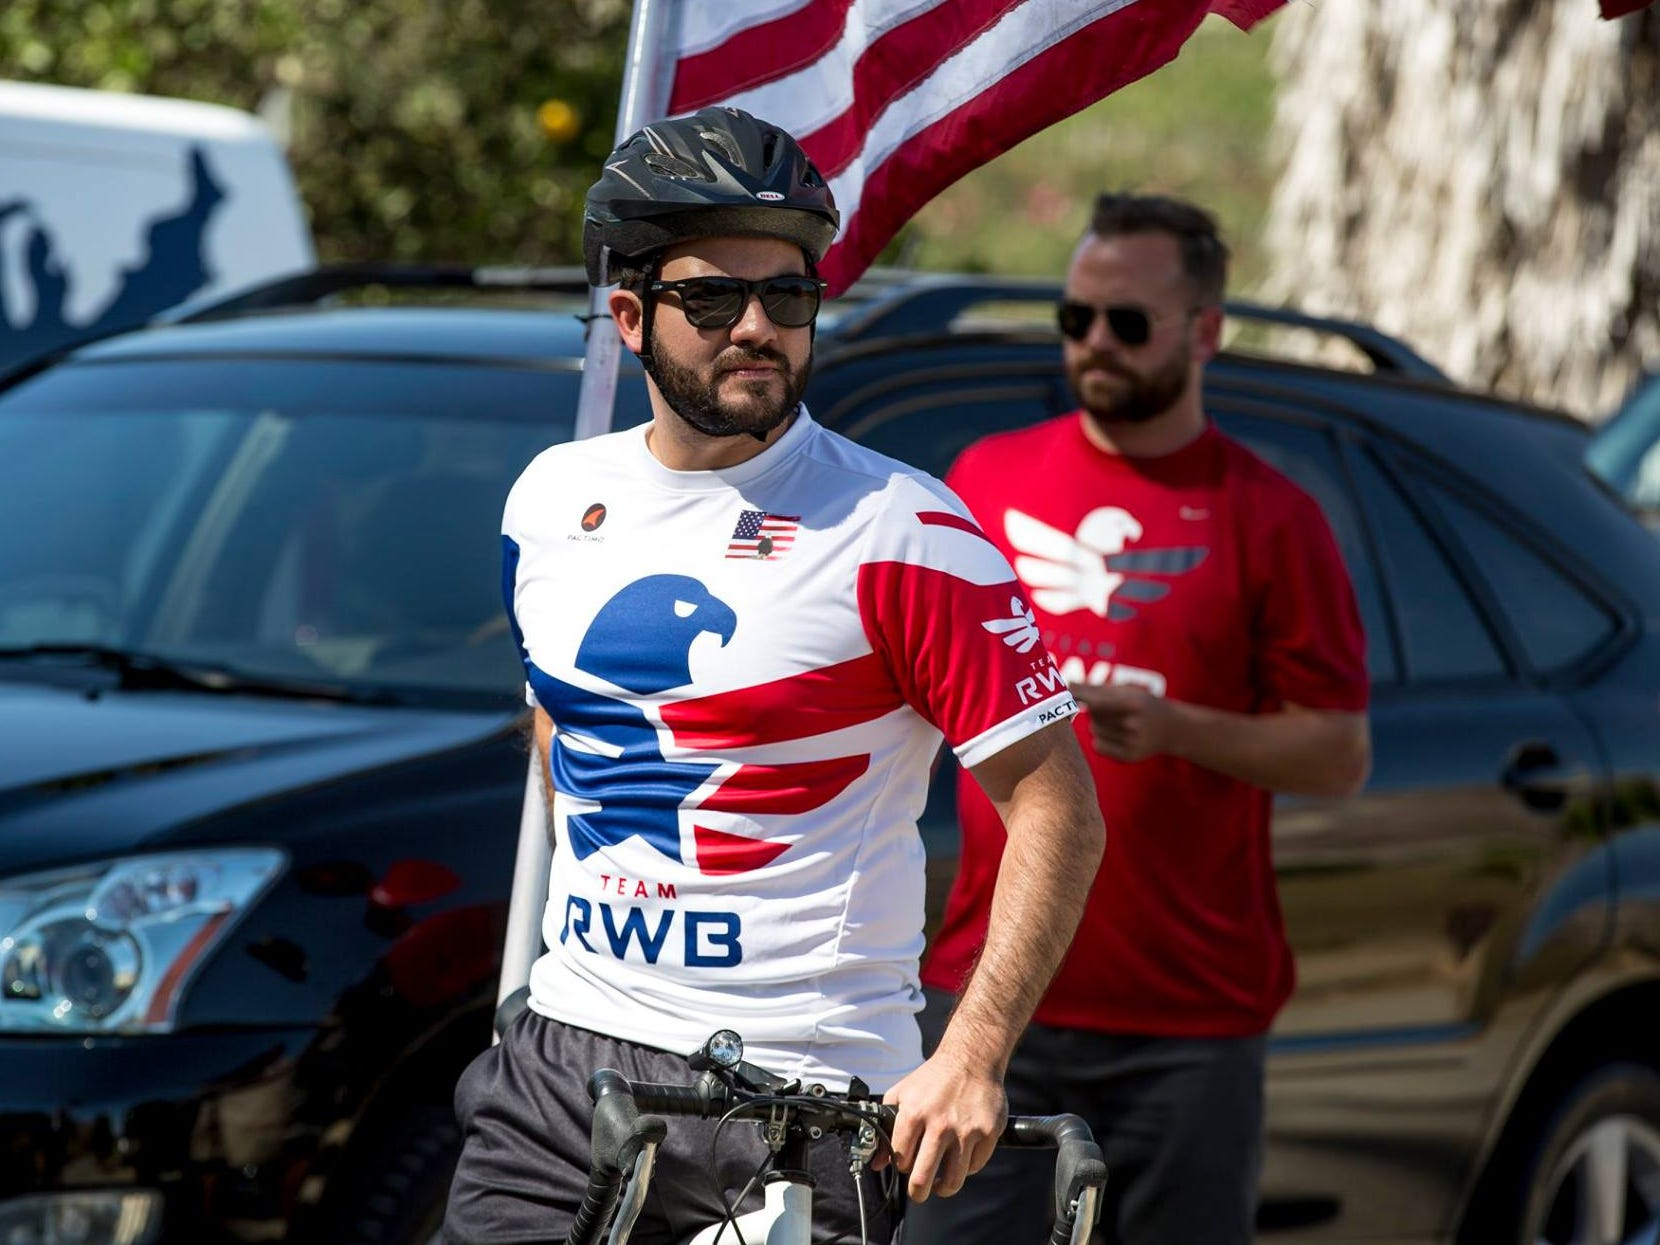 Daniel Manrique, 33, was a Marine Corps veteran who started the Ventura County chapter of Team Red, White and Blue in 2014 to help fellow veterans make the transition from military to civilian life.